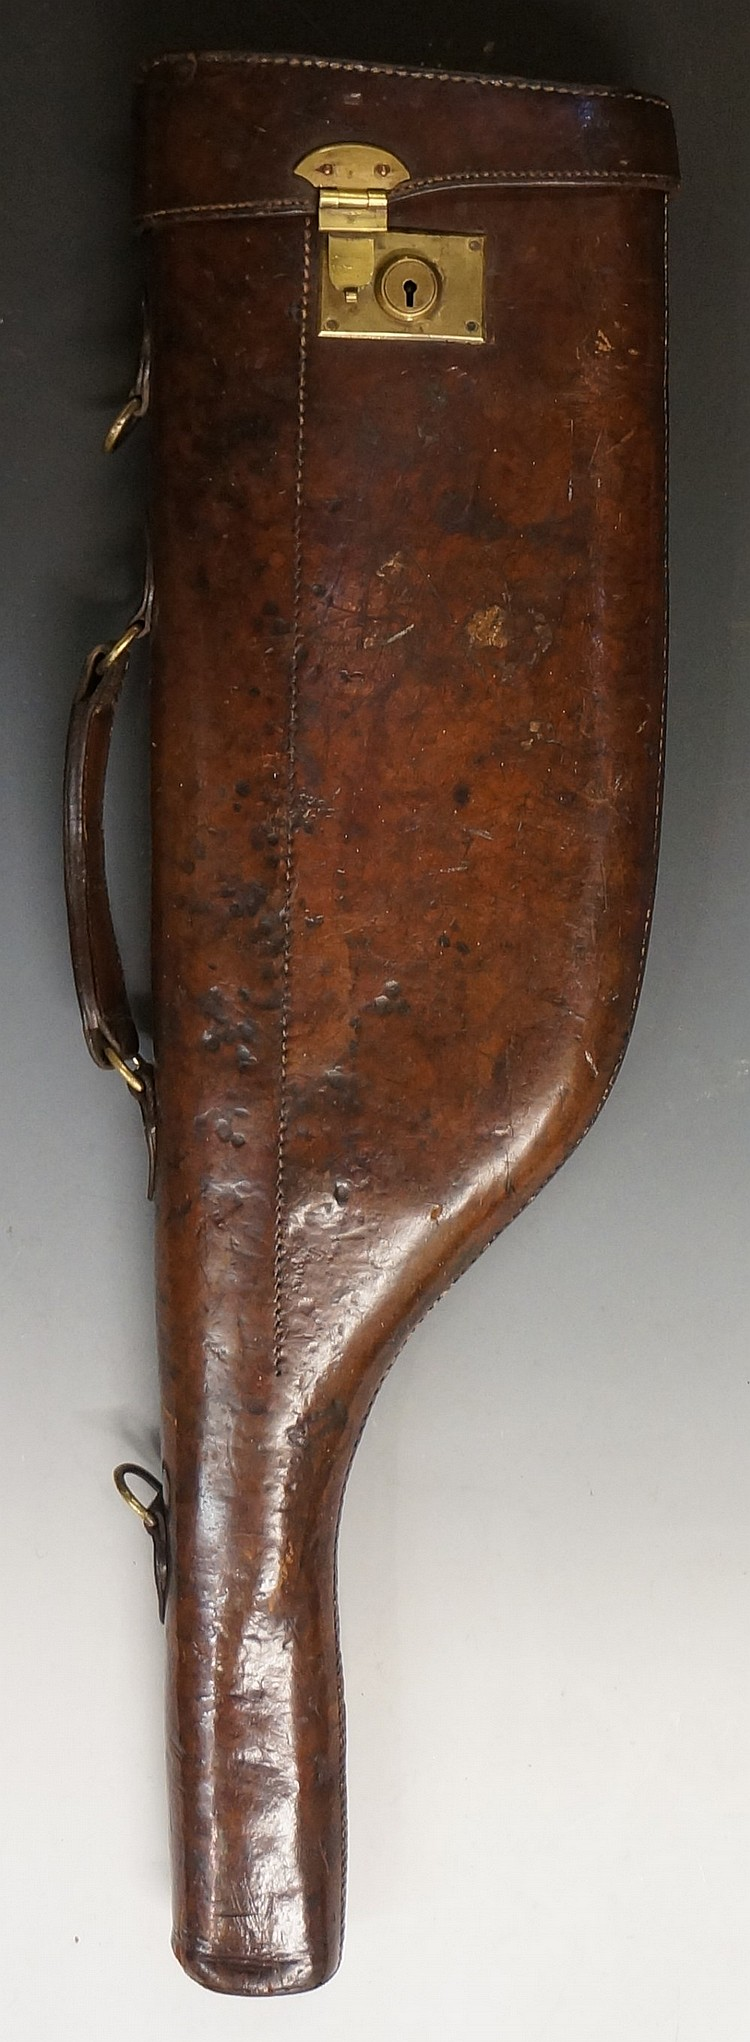 A 19th Century 'leg-o-mutton' brown leather gun case with brass lock and fi